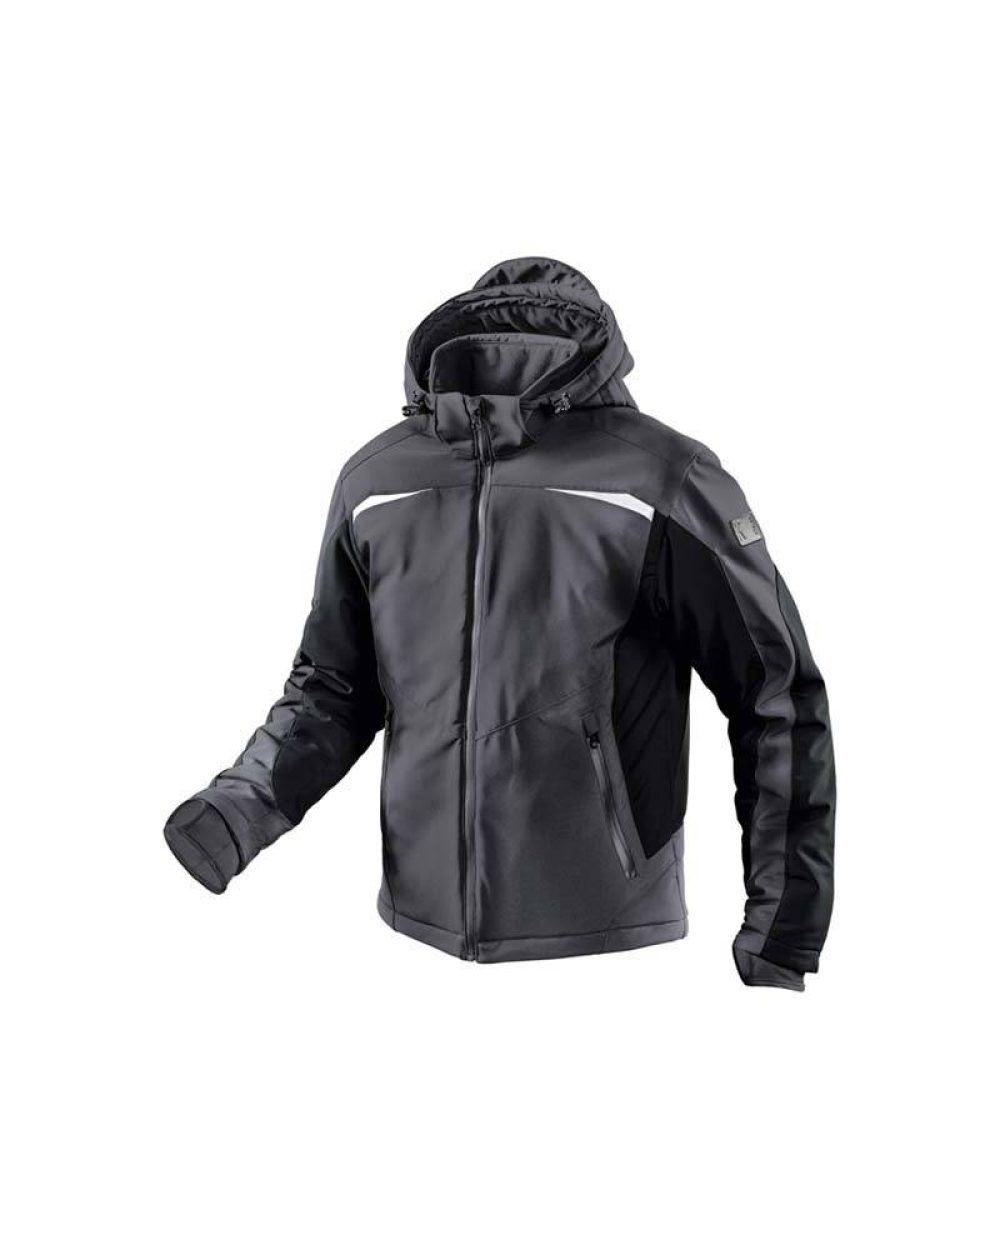 kuebler-weather-jacke-1041_7322-9799_70